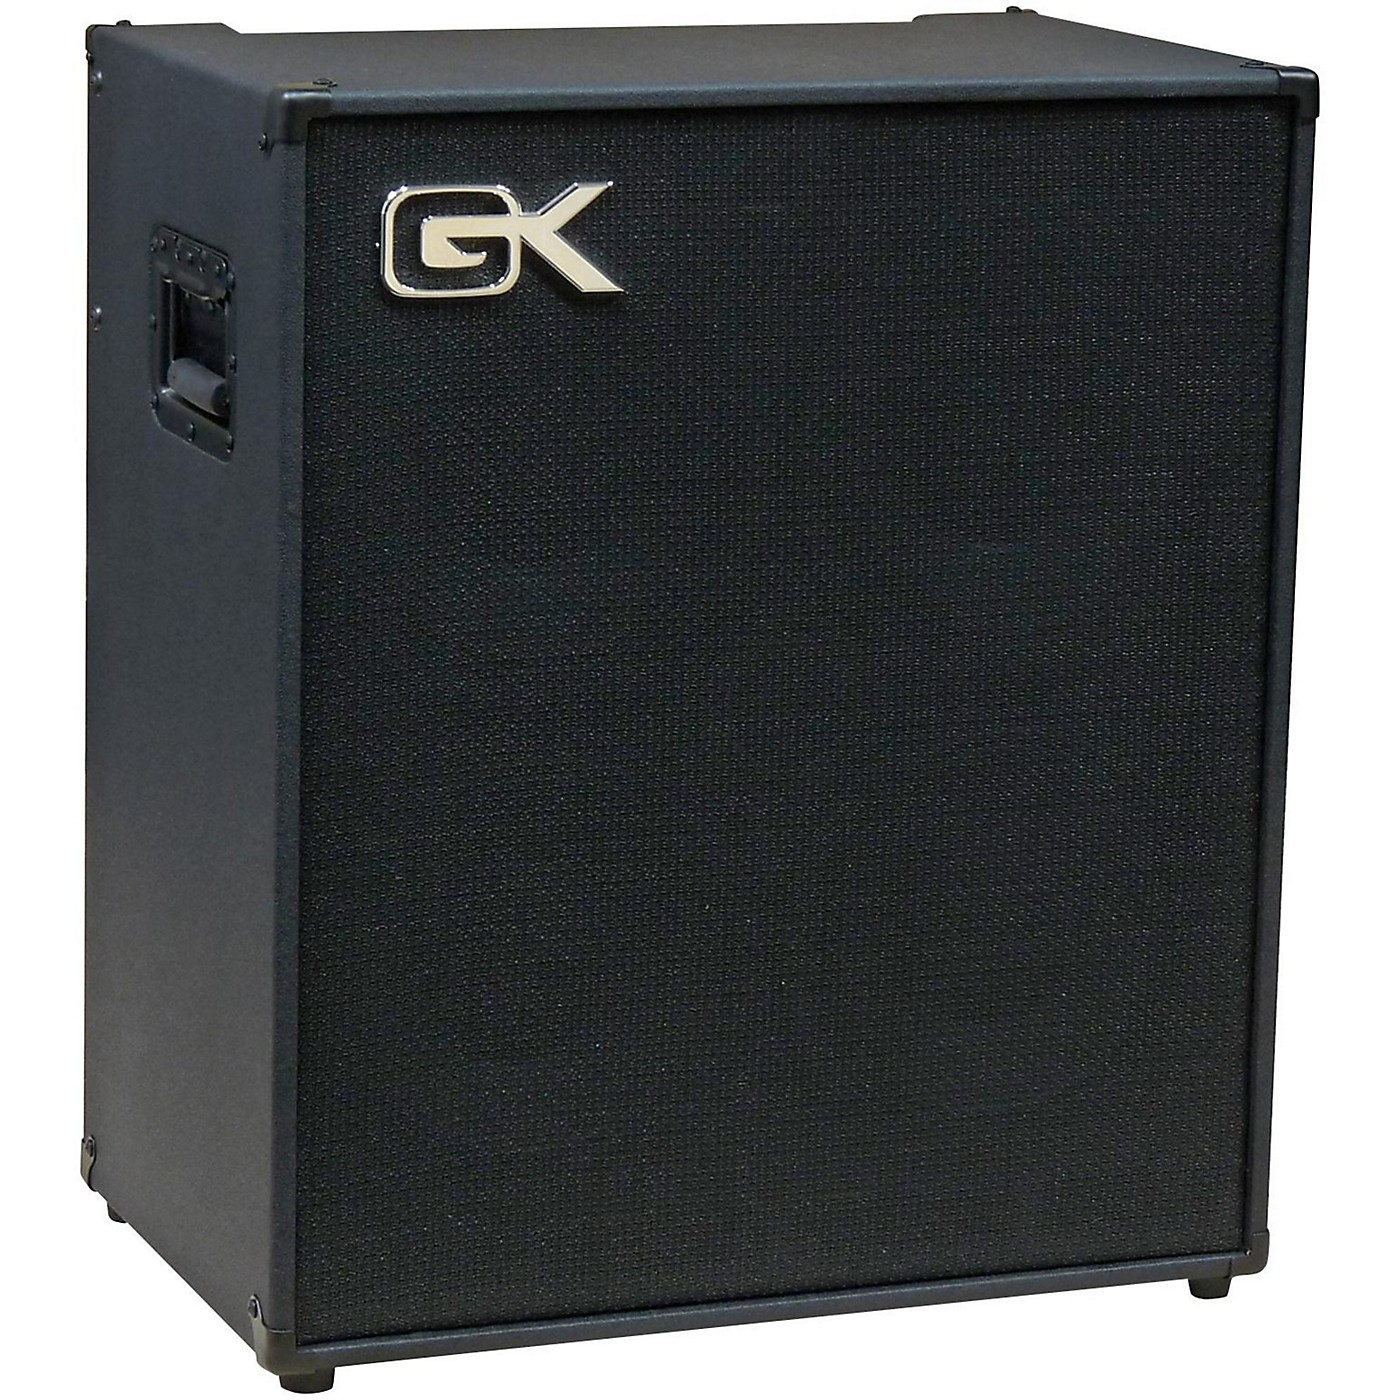 Gallien-Krueger MB410-II 500W 4x10 Bass Combo with Horn thumbnail